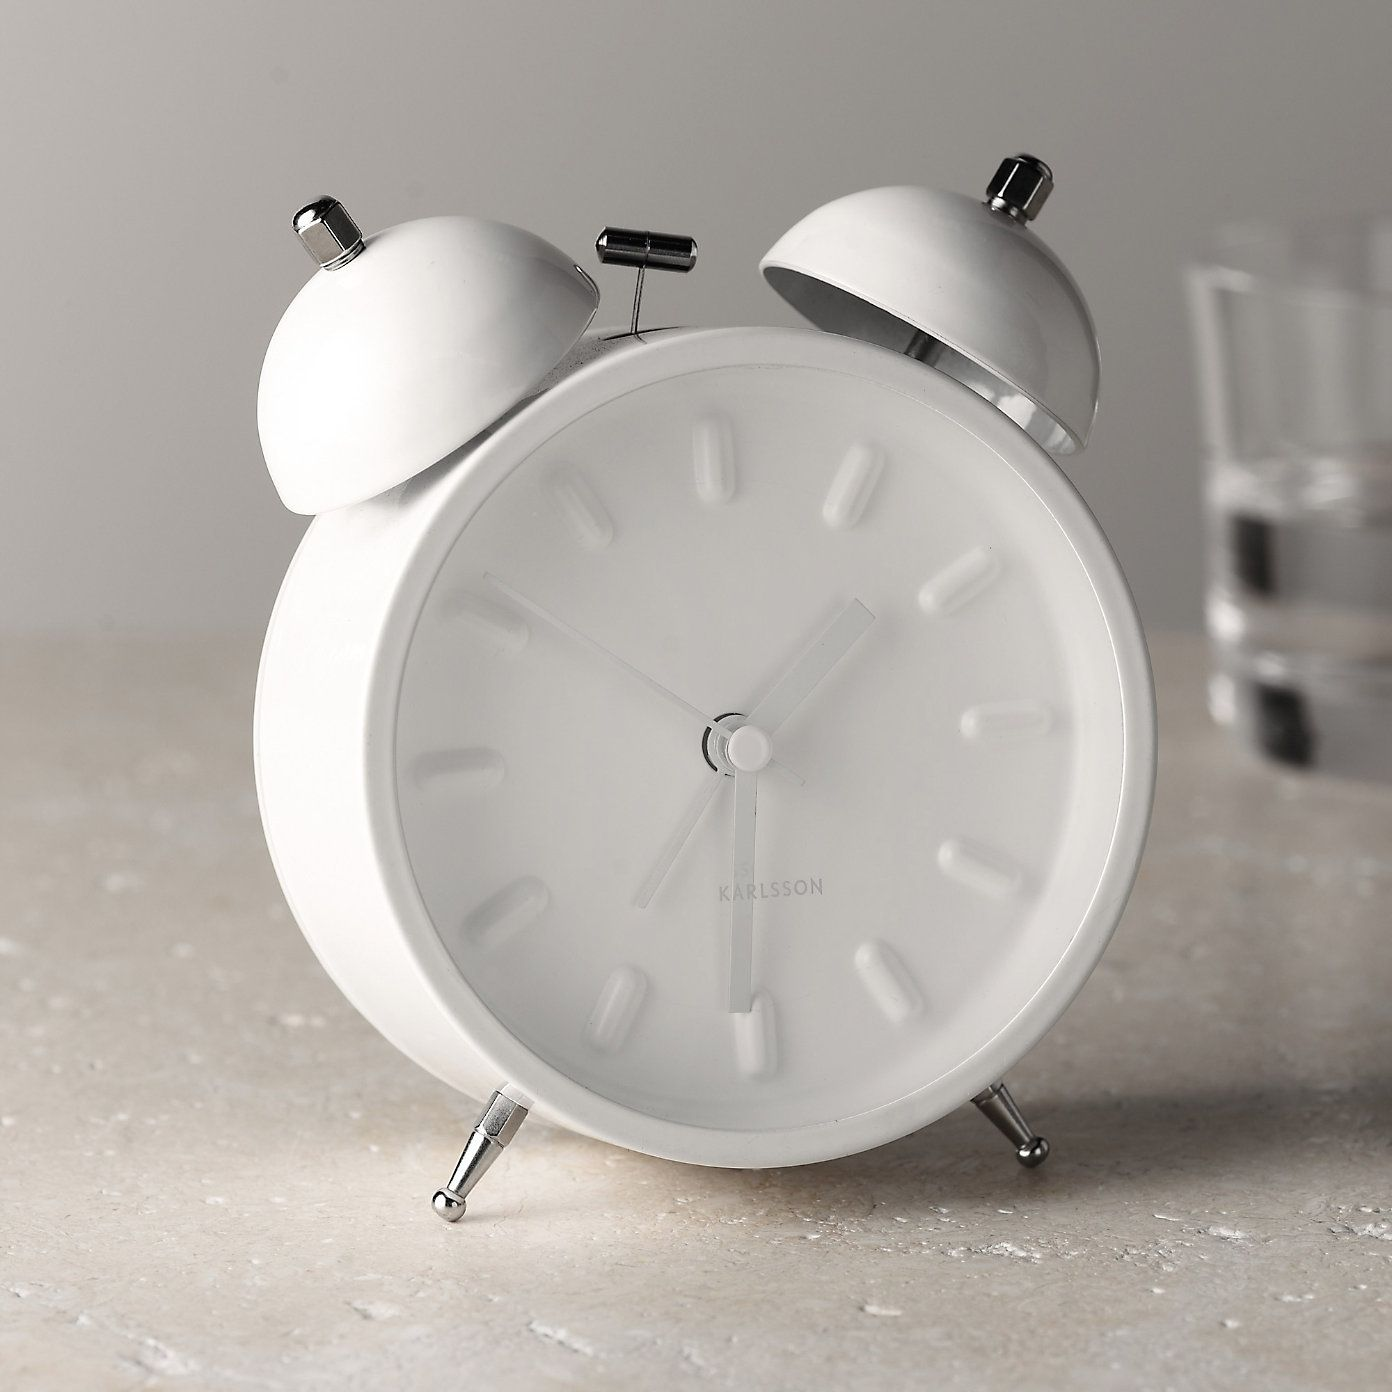 Company Small Karlsson Alarm Clock